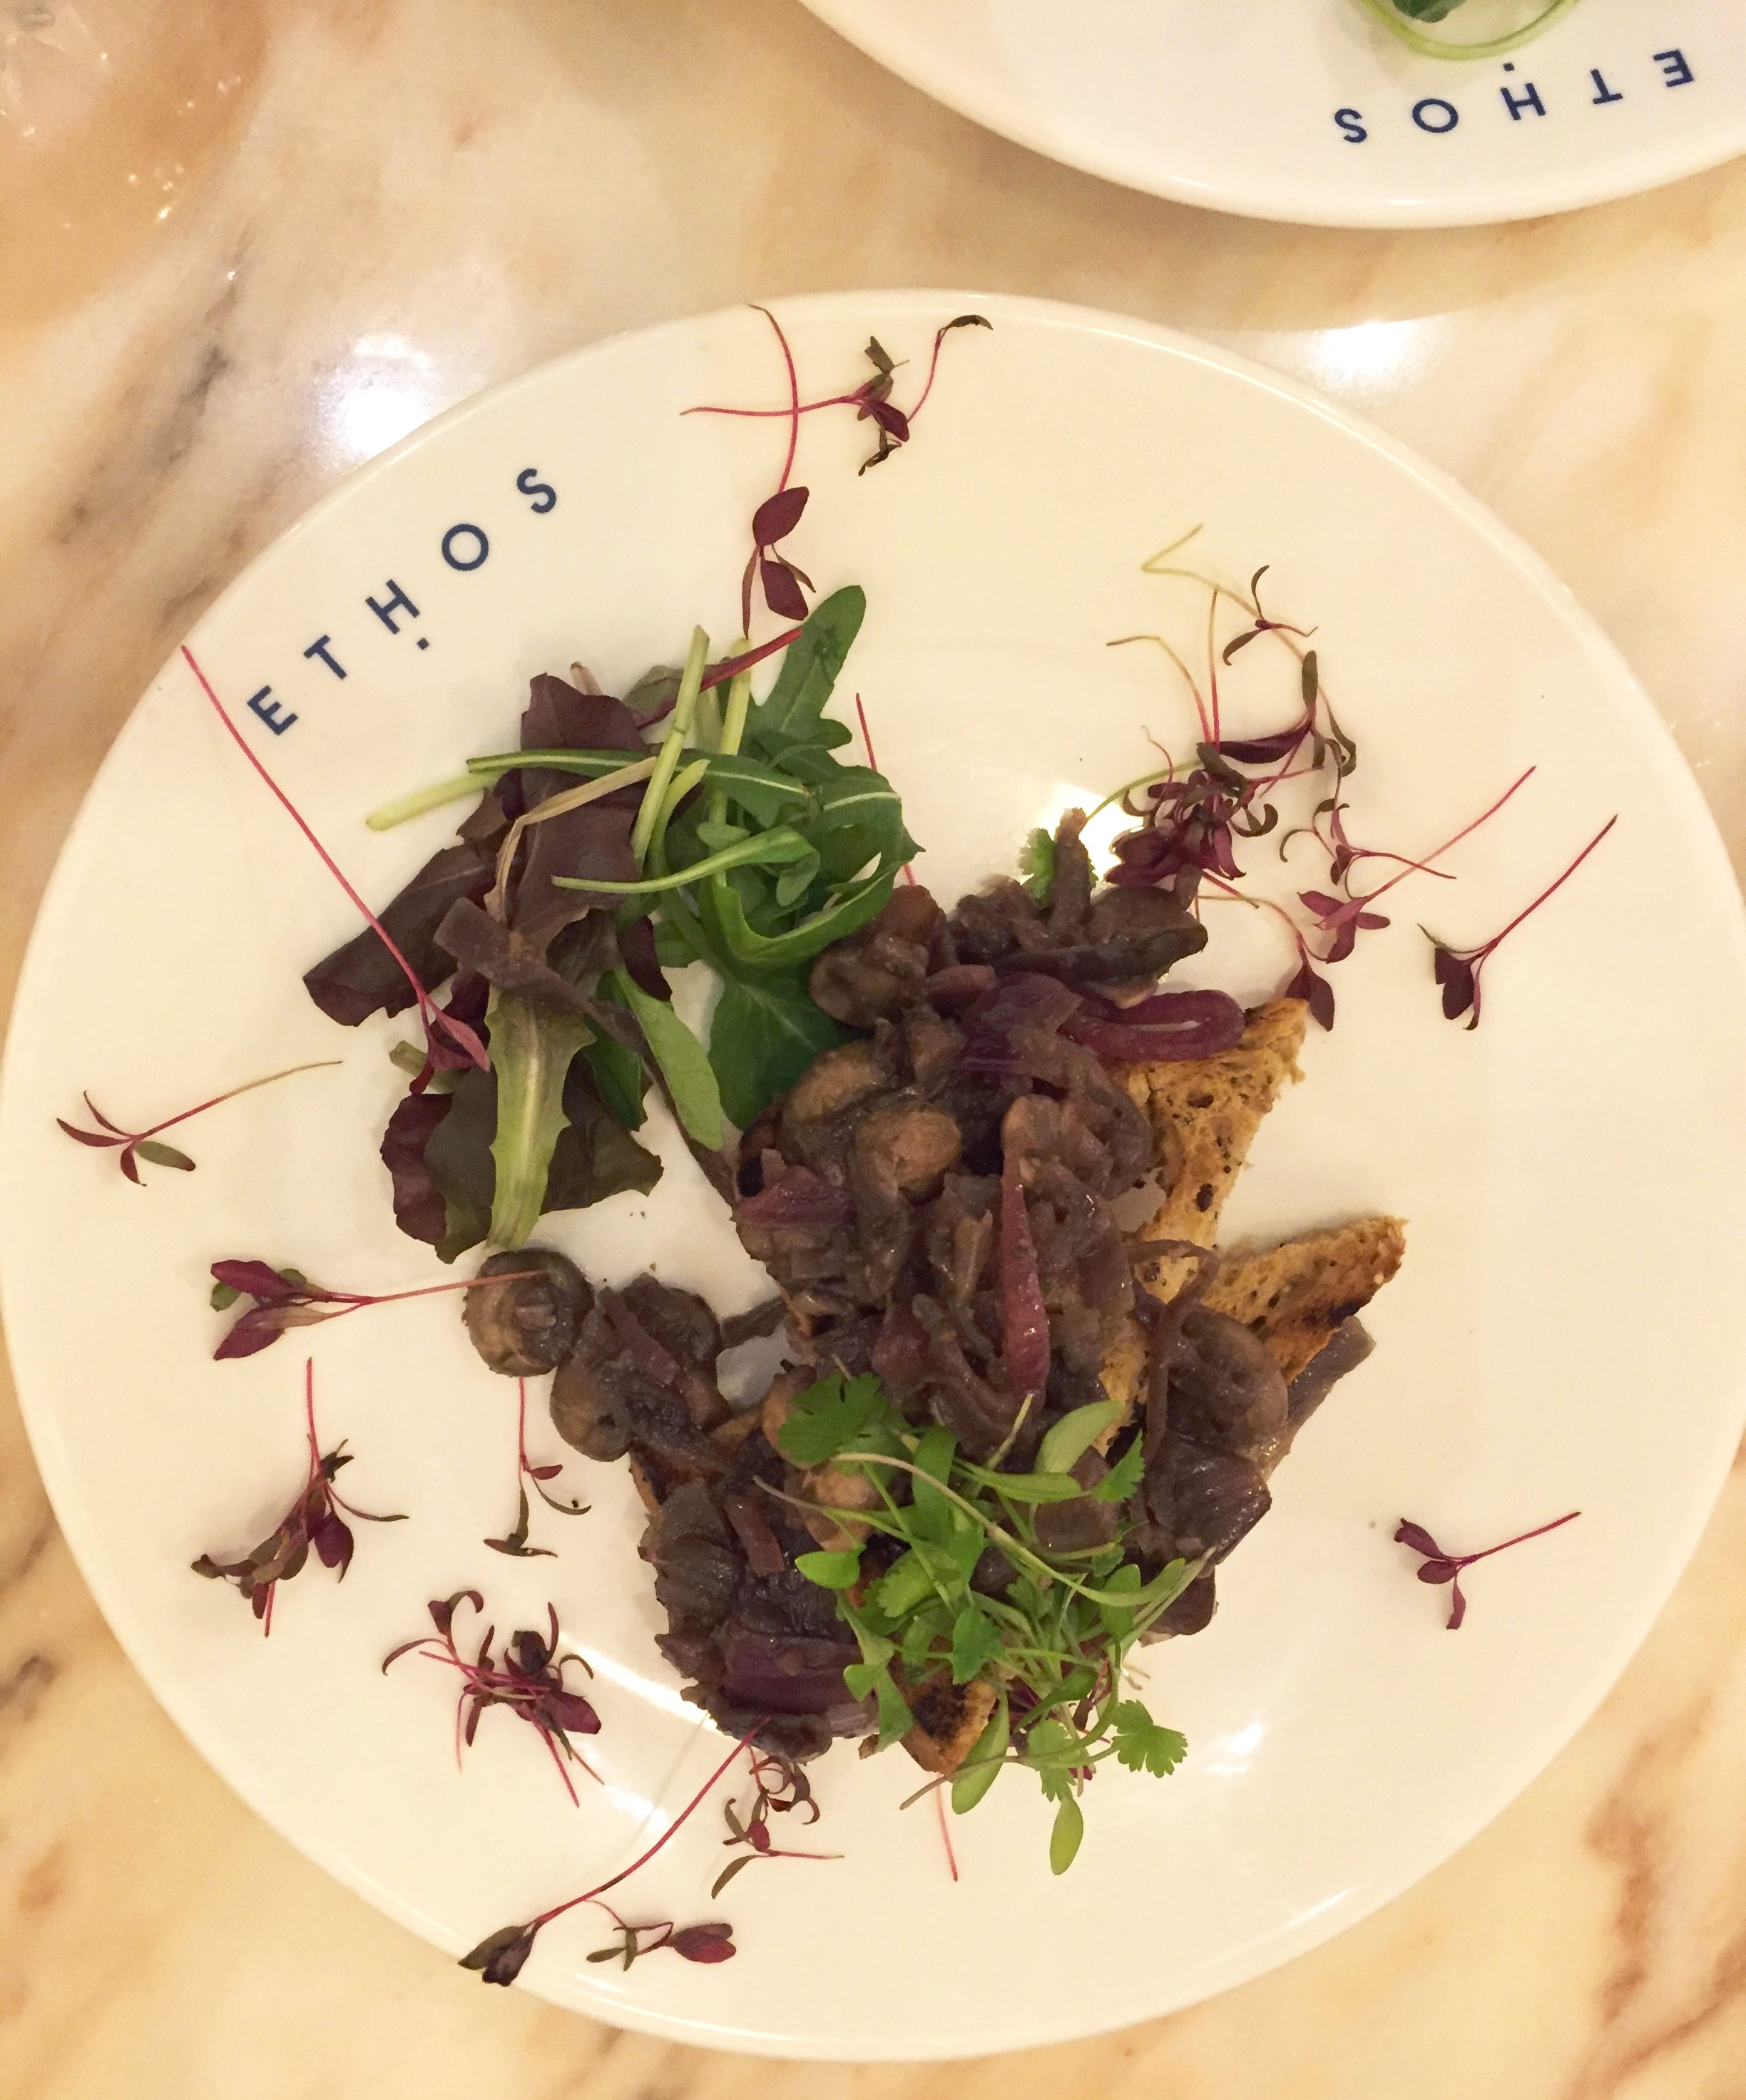 Ethos restaurant review - dinner